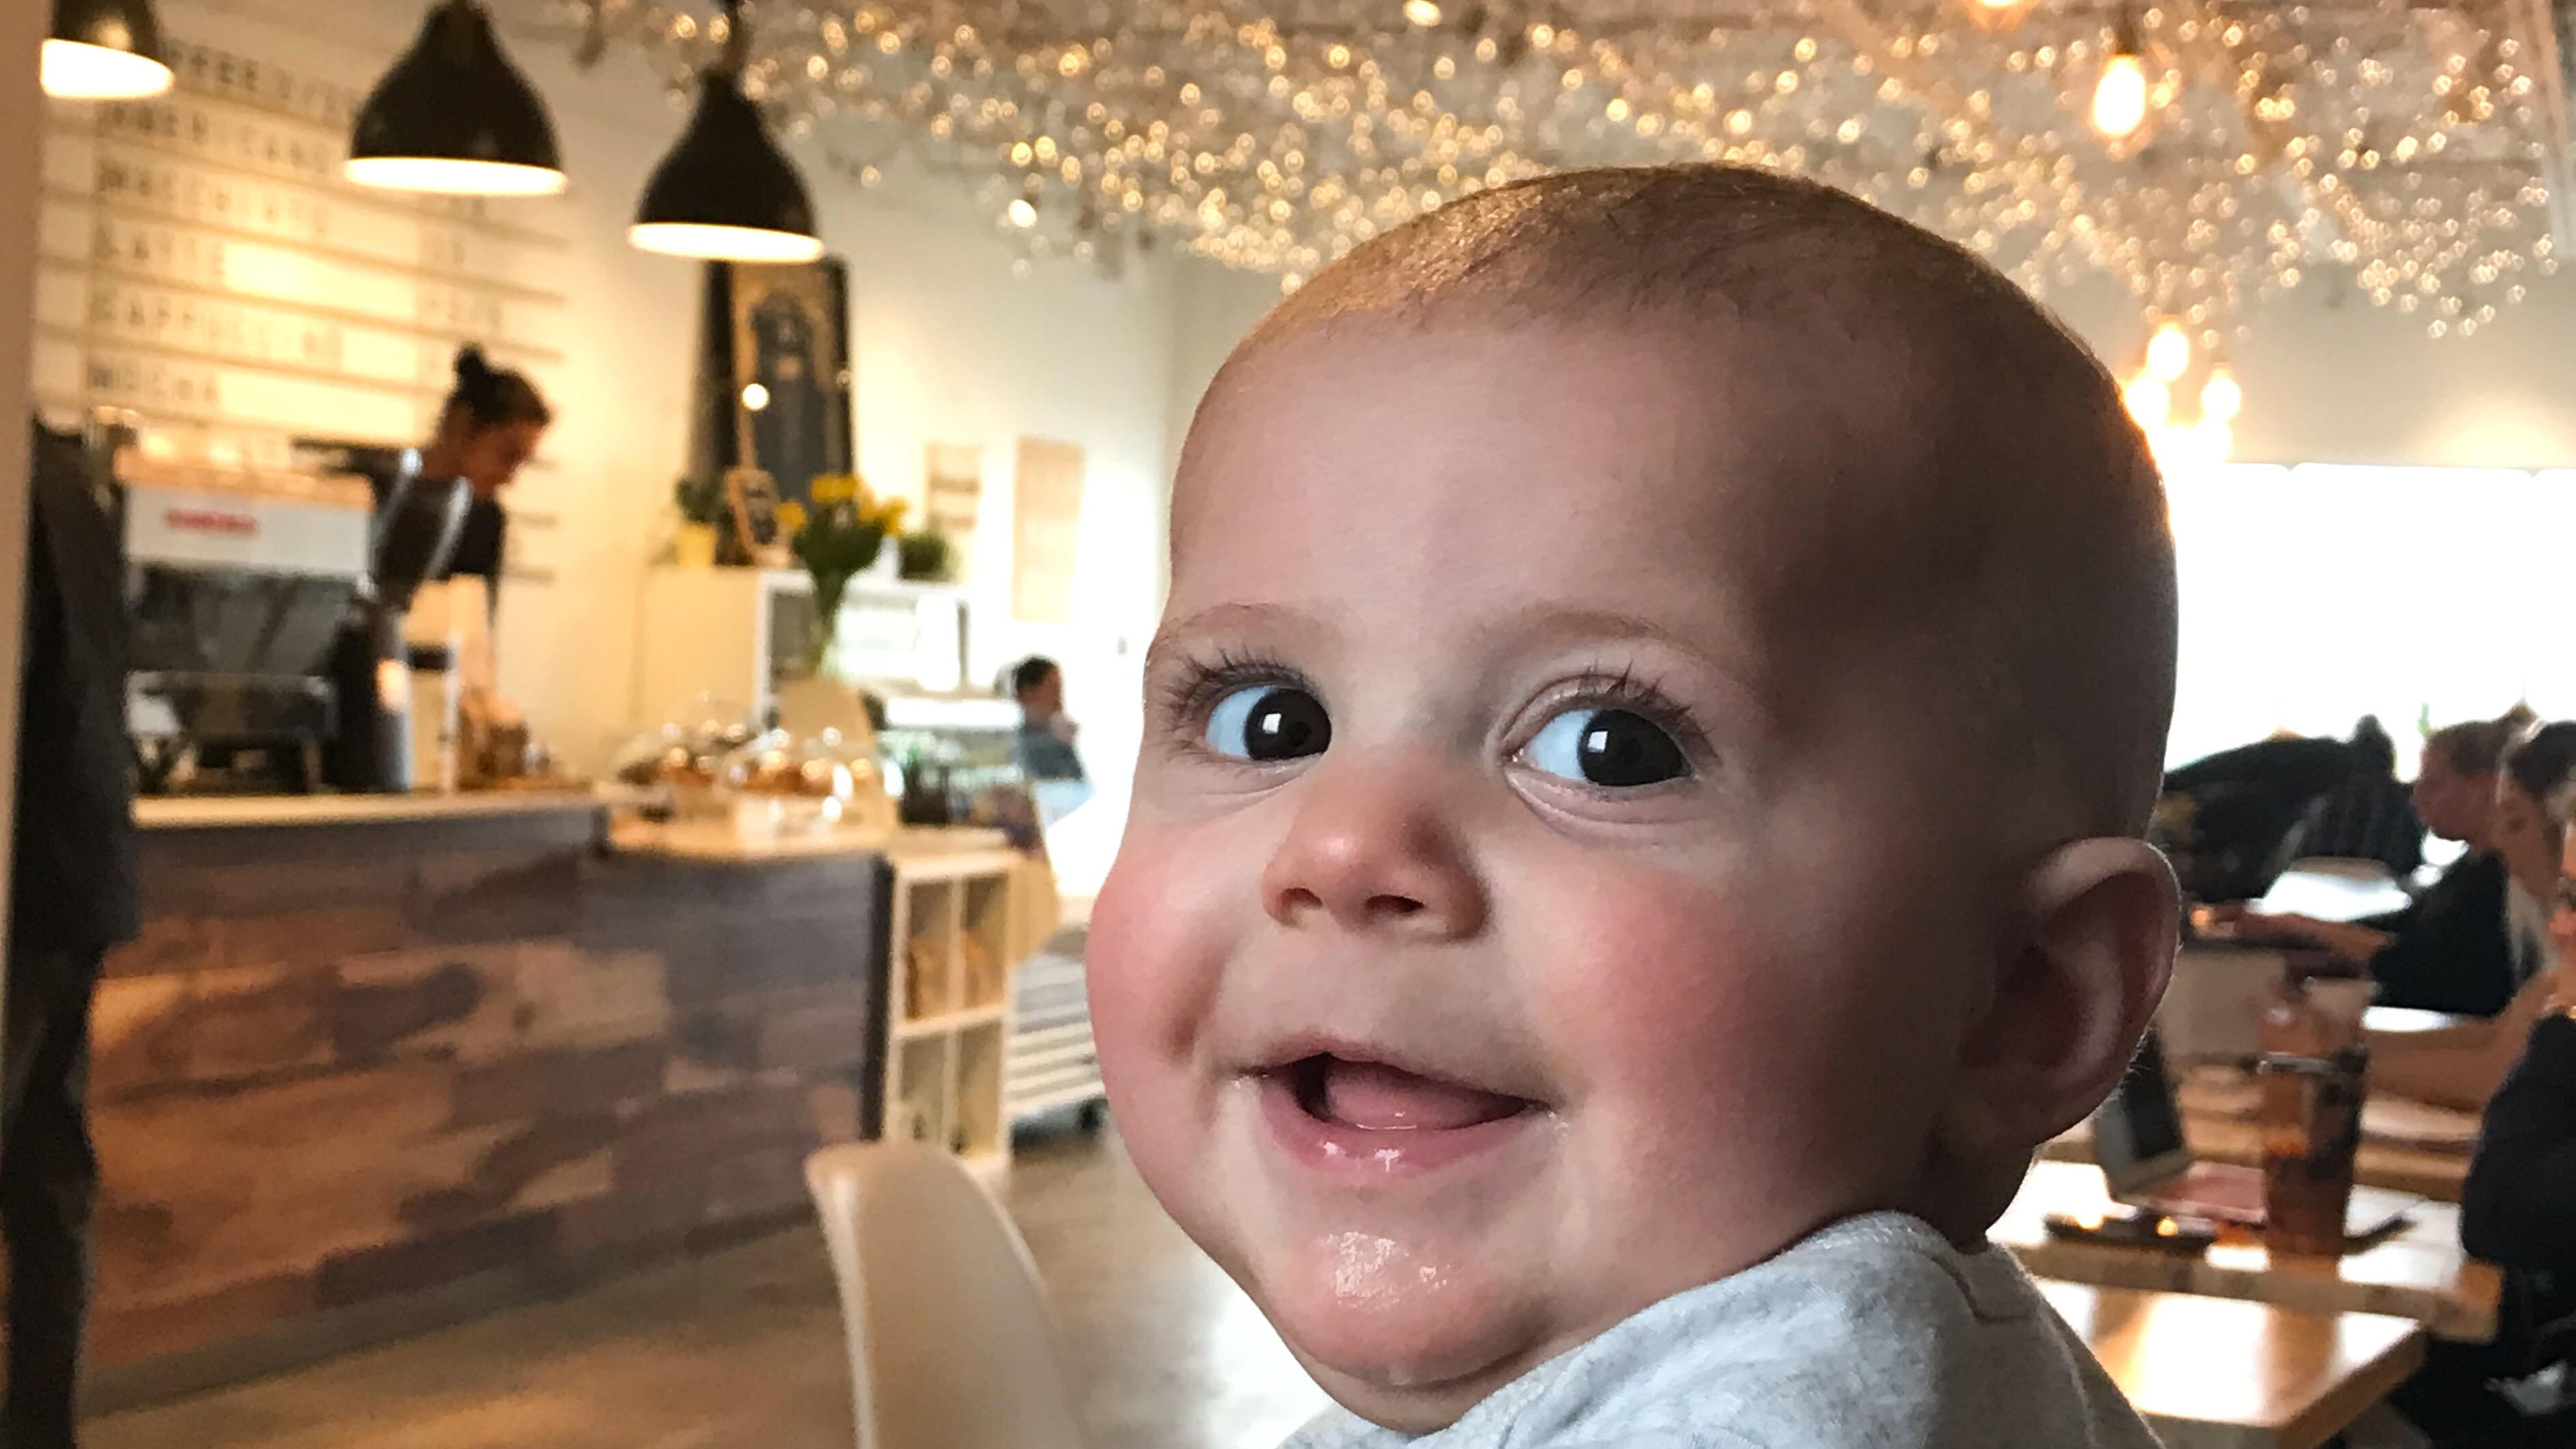 Beau visits the coffee shop where his mother, Natalie Leger, worked and met a doula who offered support.